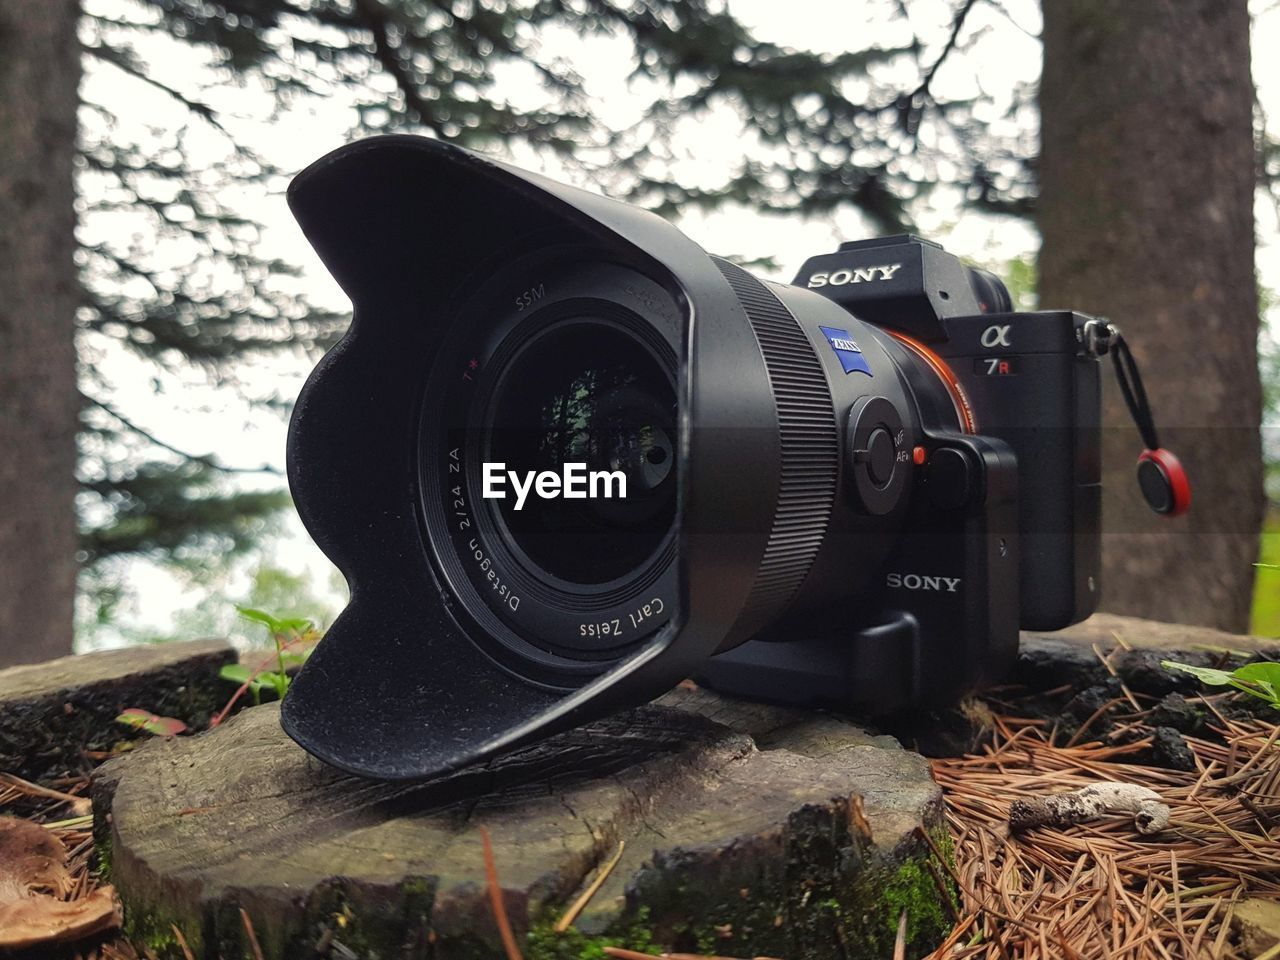 technology, photography themes, camera - photographic equipment, tree, close-up, plant, lens - optical instrument, camera, day, photographic equipment, no people, digital camera, nature, focus on foreground, black color, outdoors, modern, equipment, binoculars, single object, slr camera